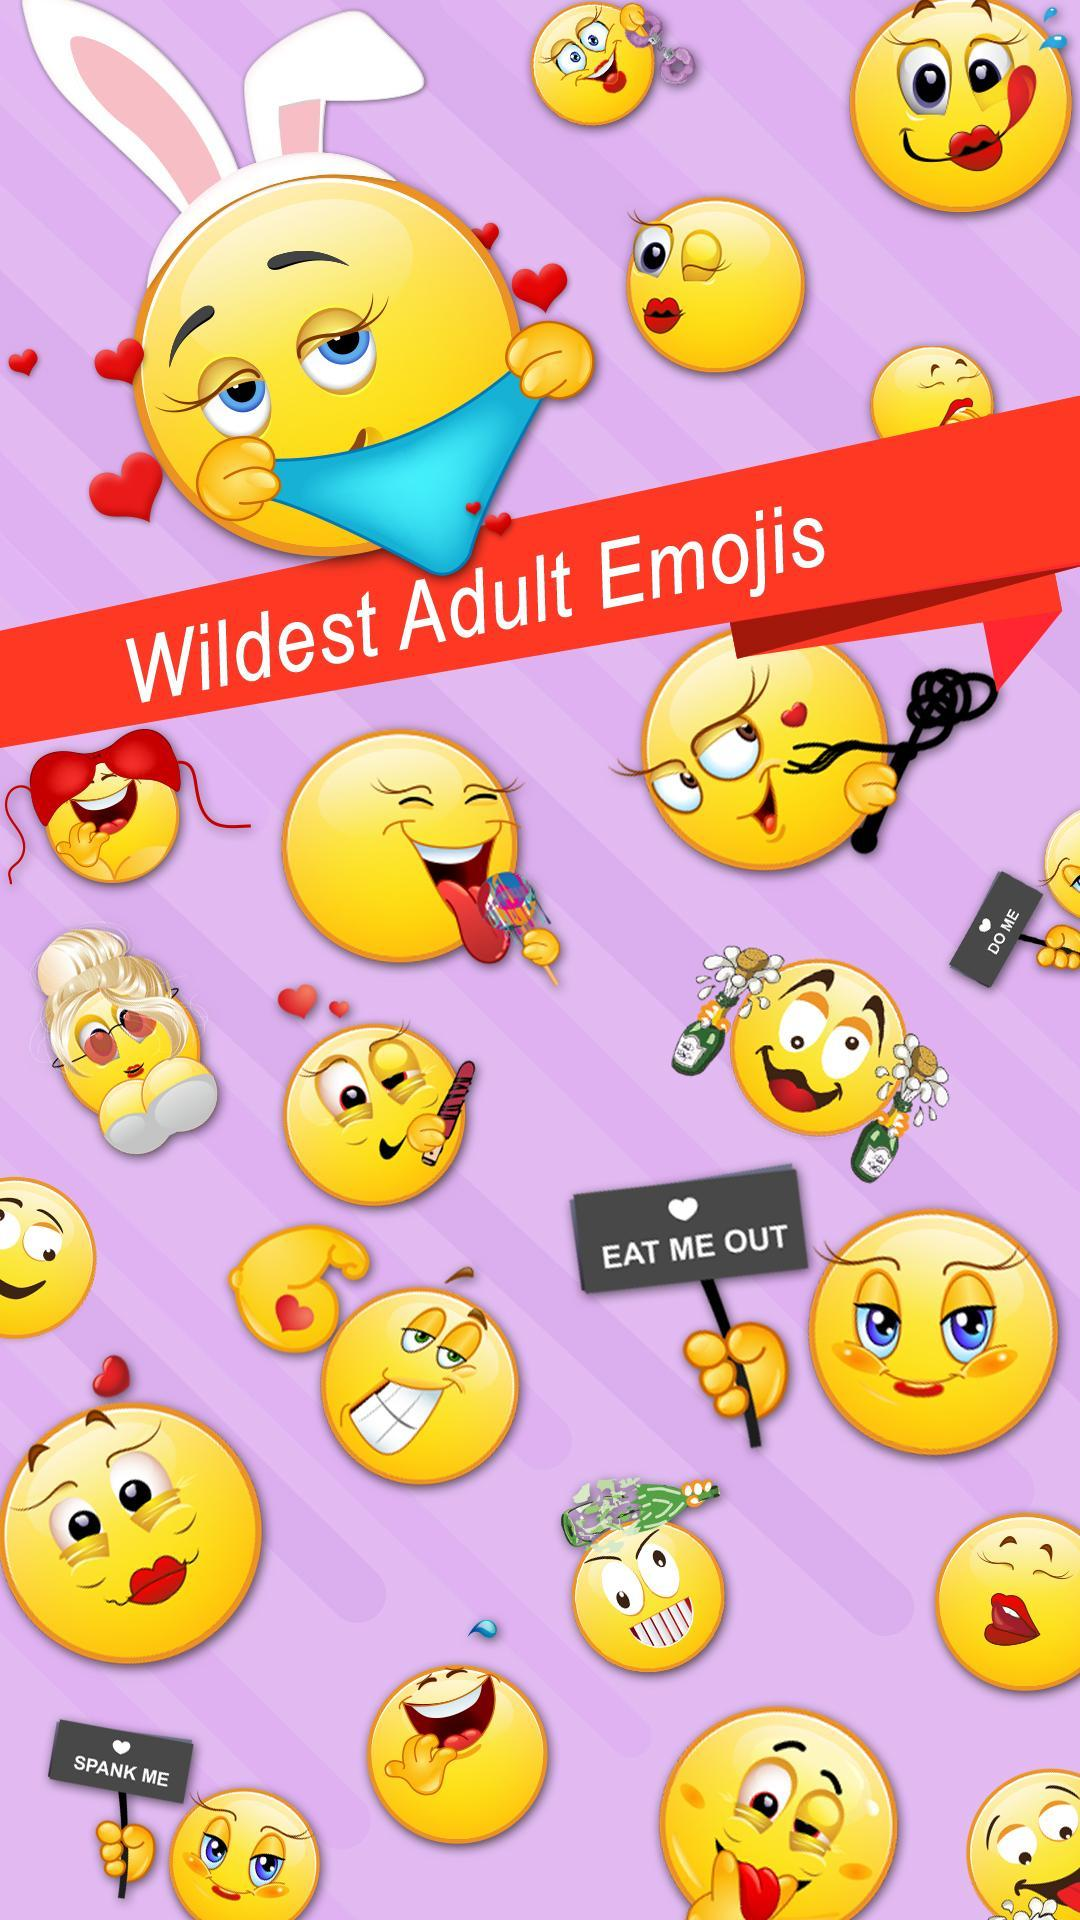 Adult Emoji Emoticons Icon Art For Android Apk Download